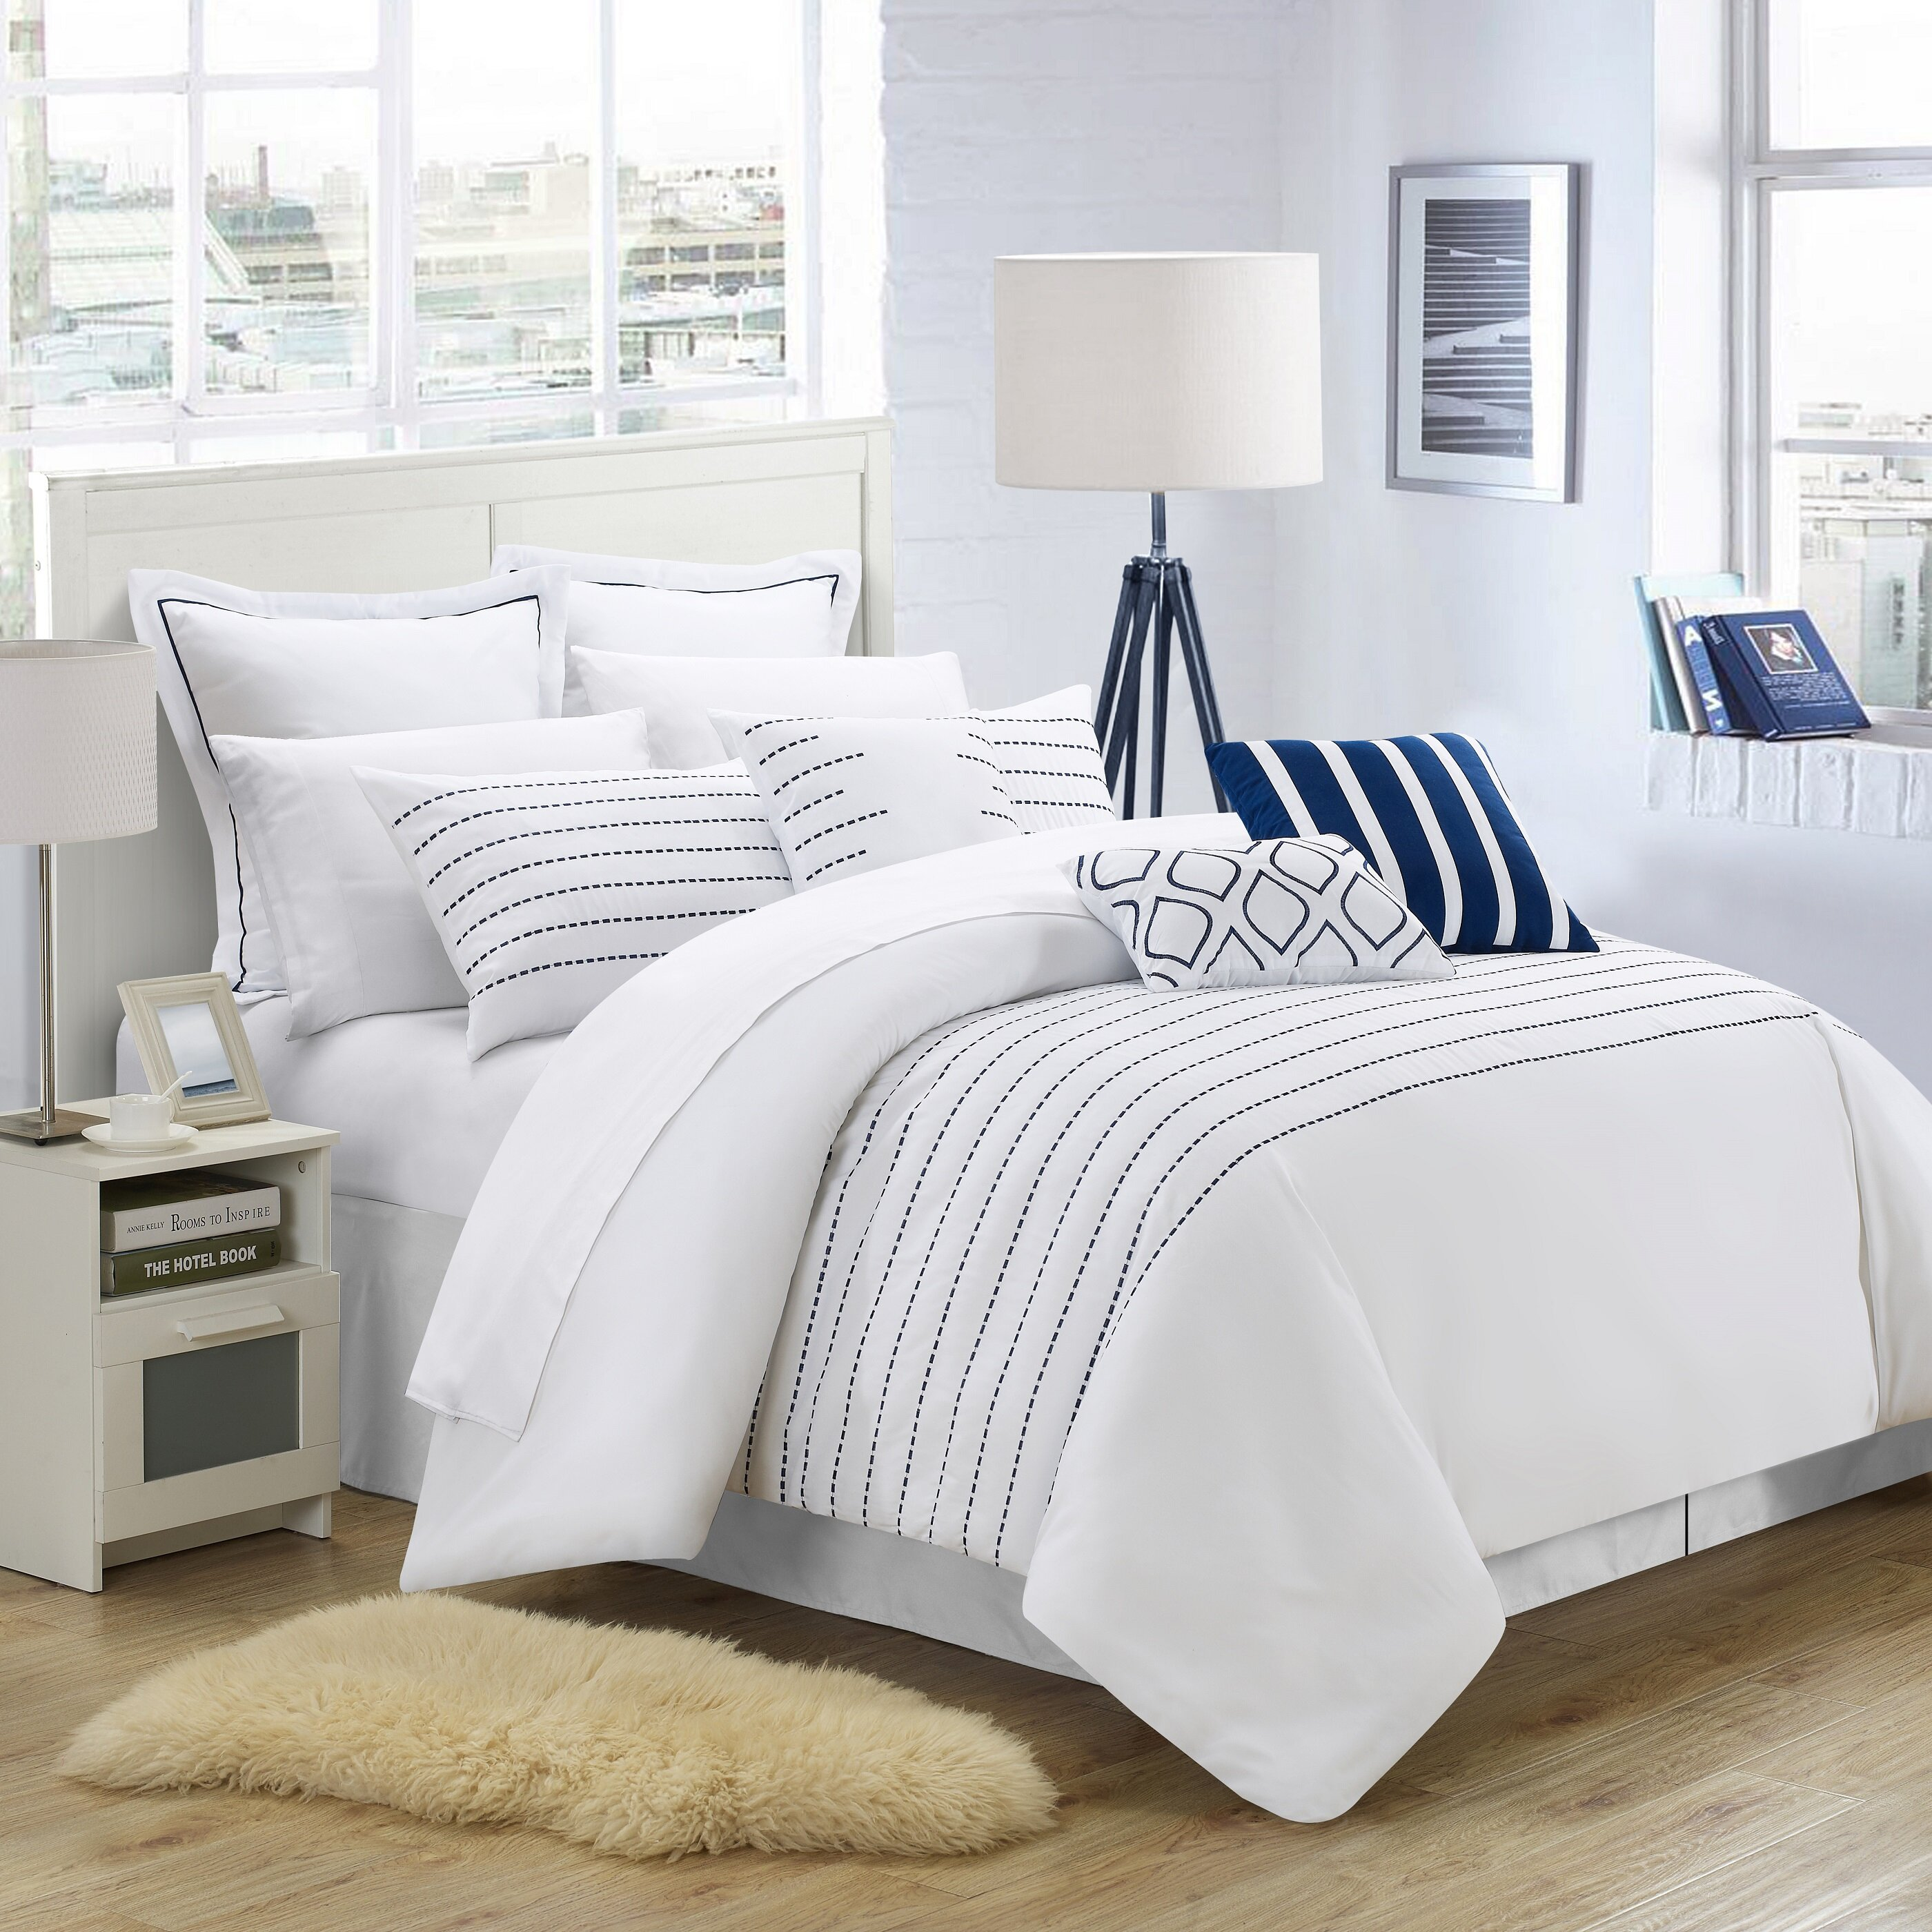 bedding comforter white with black coral stitching sets trim hotel